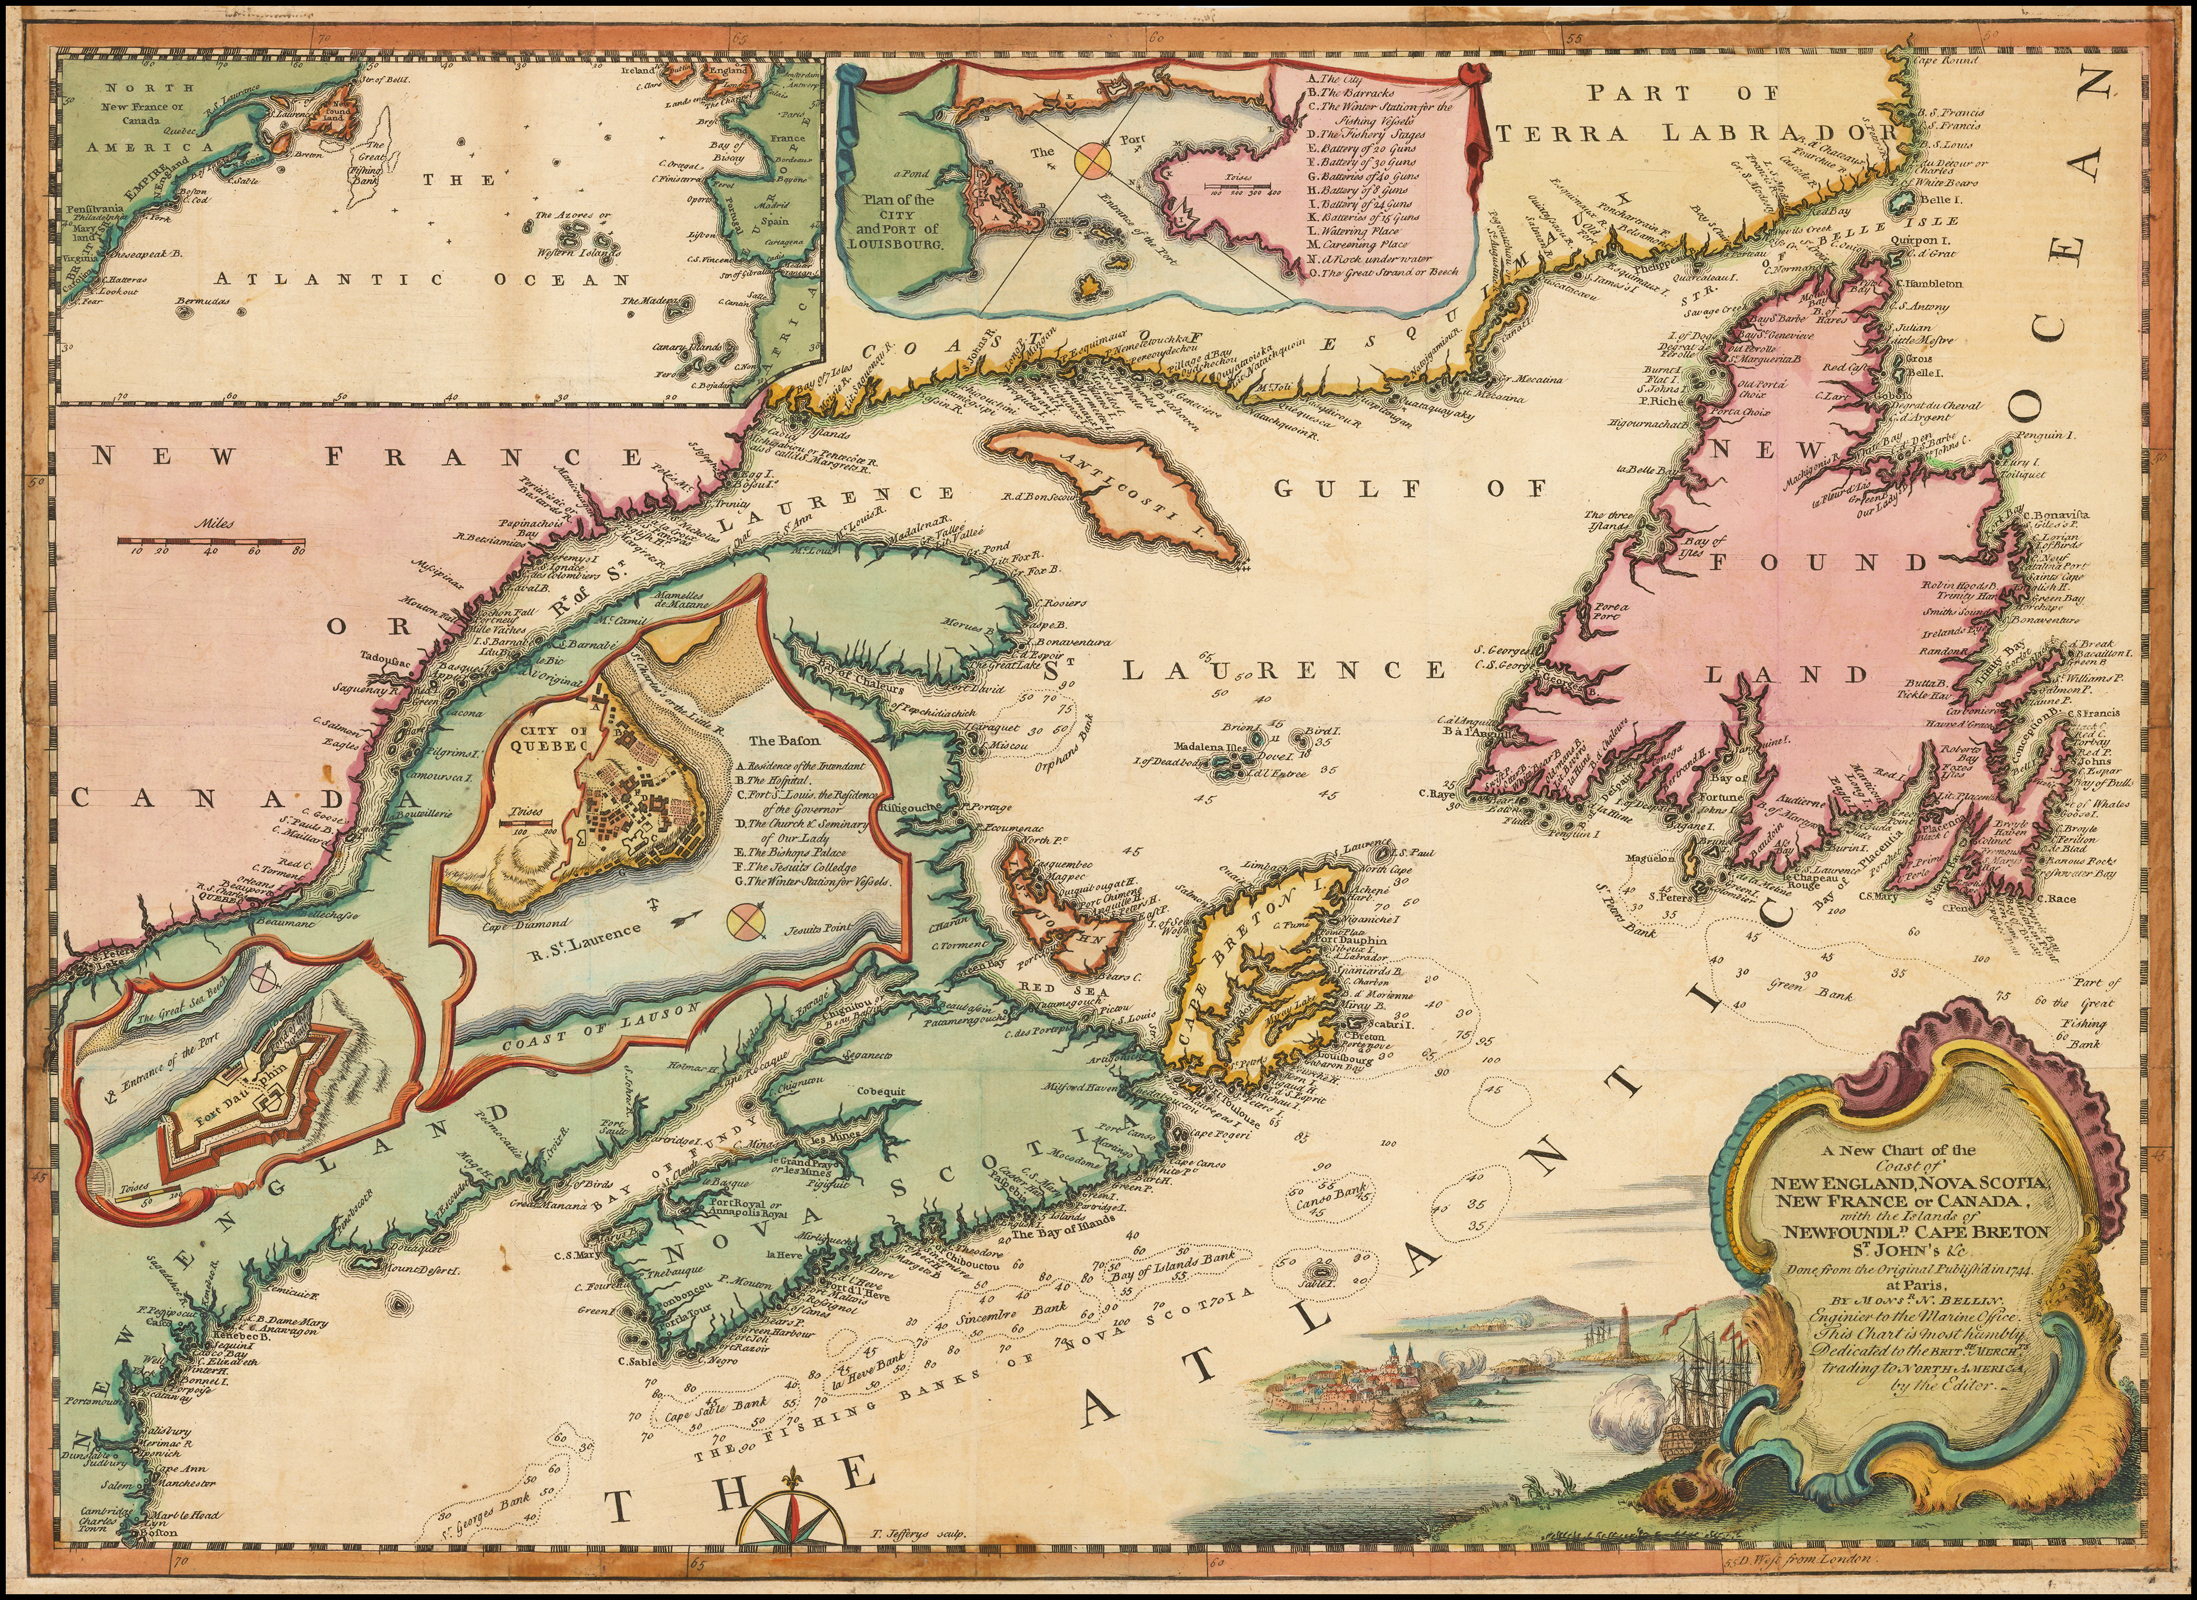 A New Chart Of New England Nova Scotia New France Or Canada With The Islands Of Newfoundland Cape Breton St John C Done From The Original Publish D In 1744 At Pars By